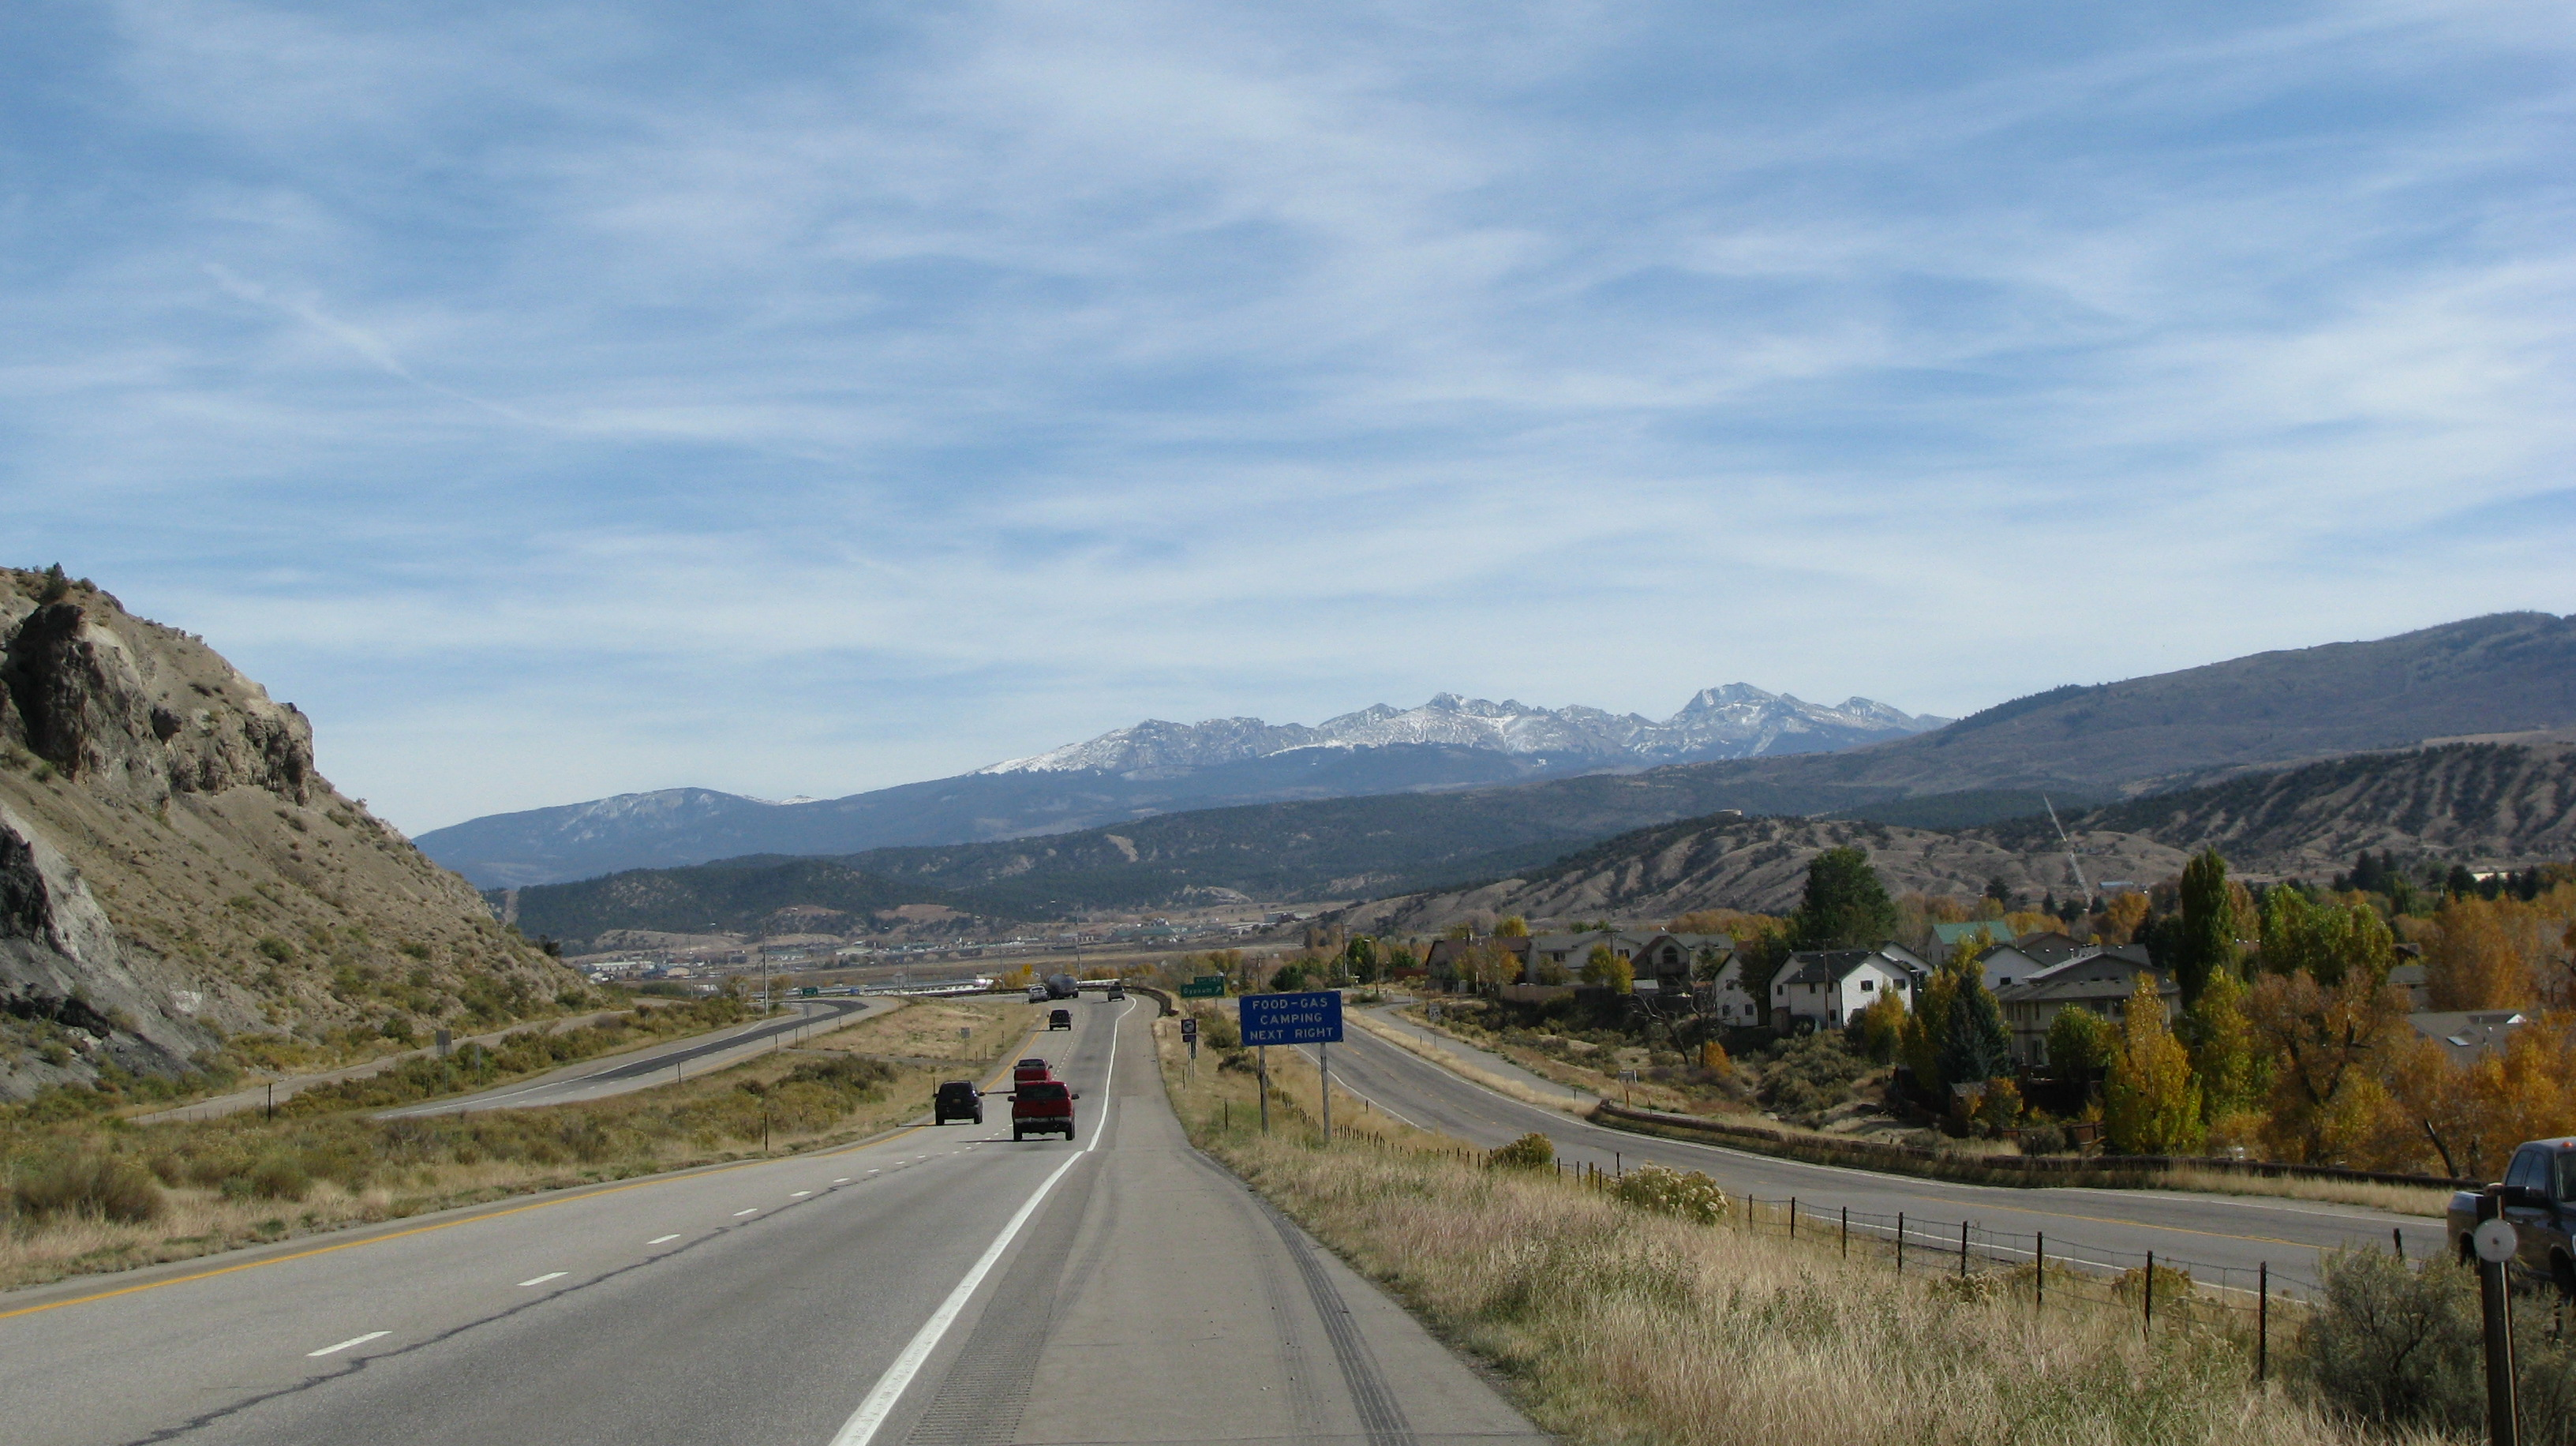 The scene while travelling eastbound when exiting Glenwood Canyon.  The mountains in the distance comprise the northern tip of the Sawatch Range, and the Holy Cross Wilderness